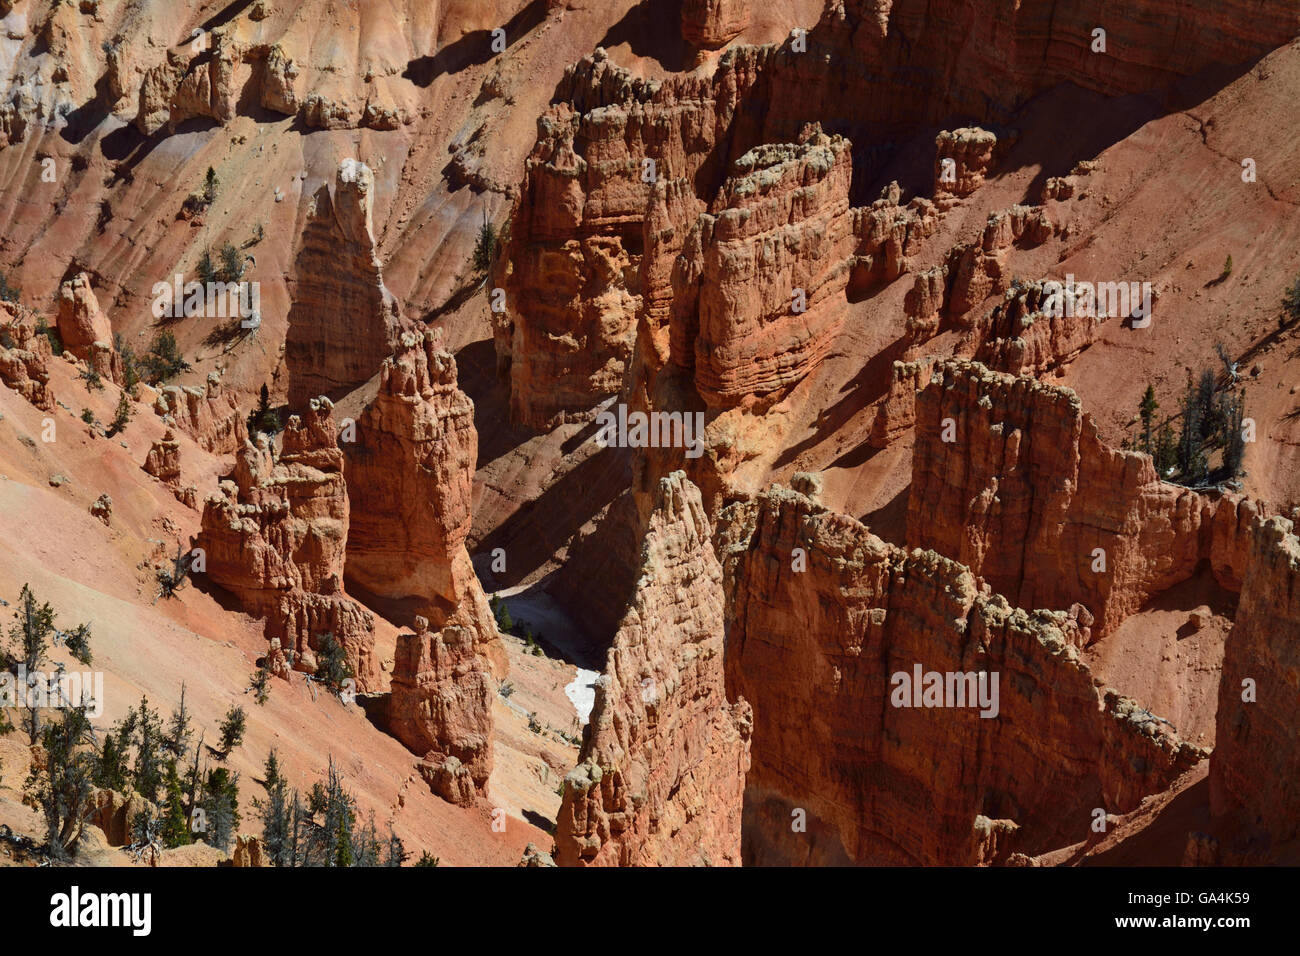 The beautiful but often ignored landscape of Cedar Breaks National Monument in Utah. - Stock Image